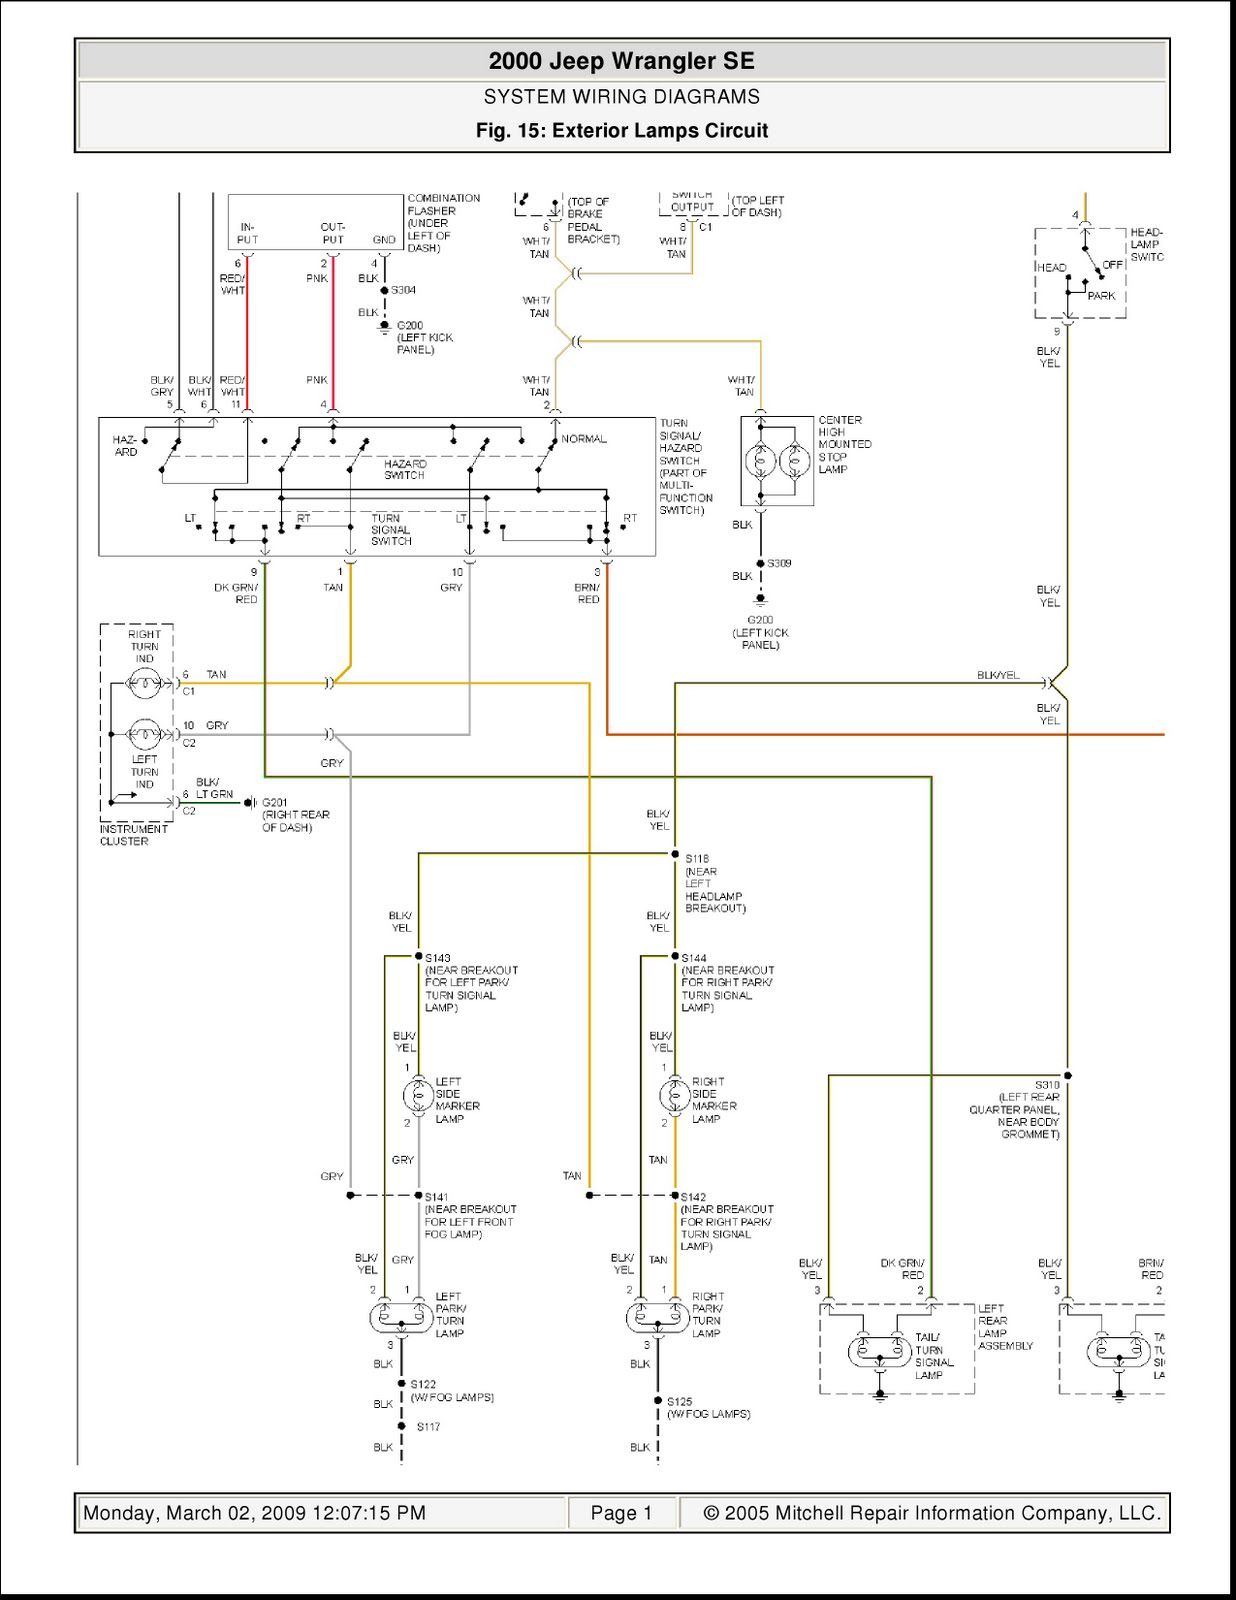 2000 Jeep wrangler wiring diagram